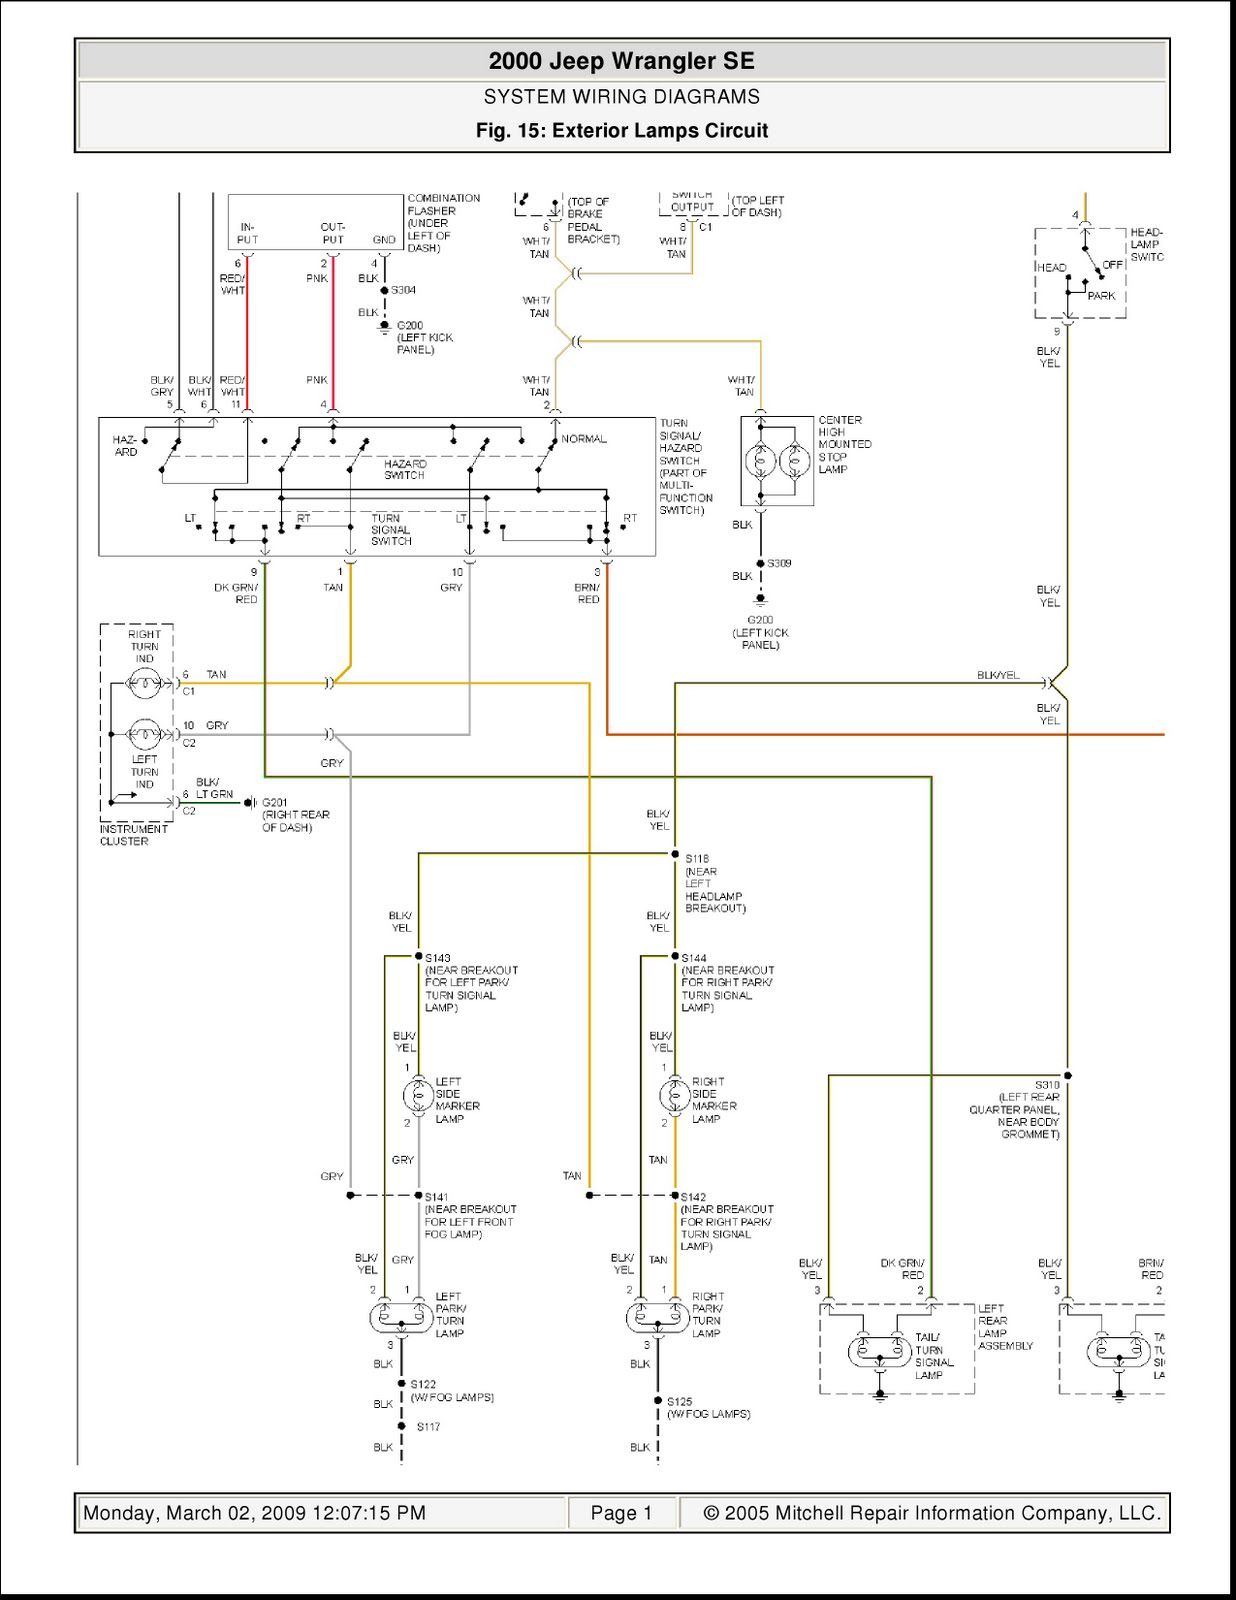 2000 Jeep wrangler wiring diagram